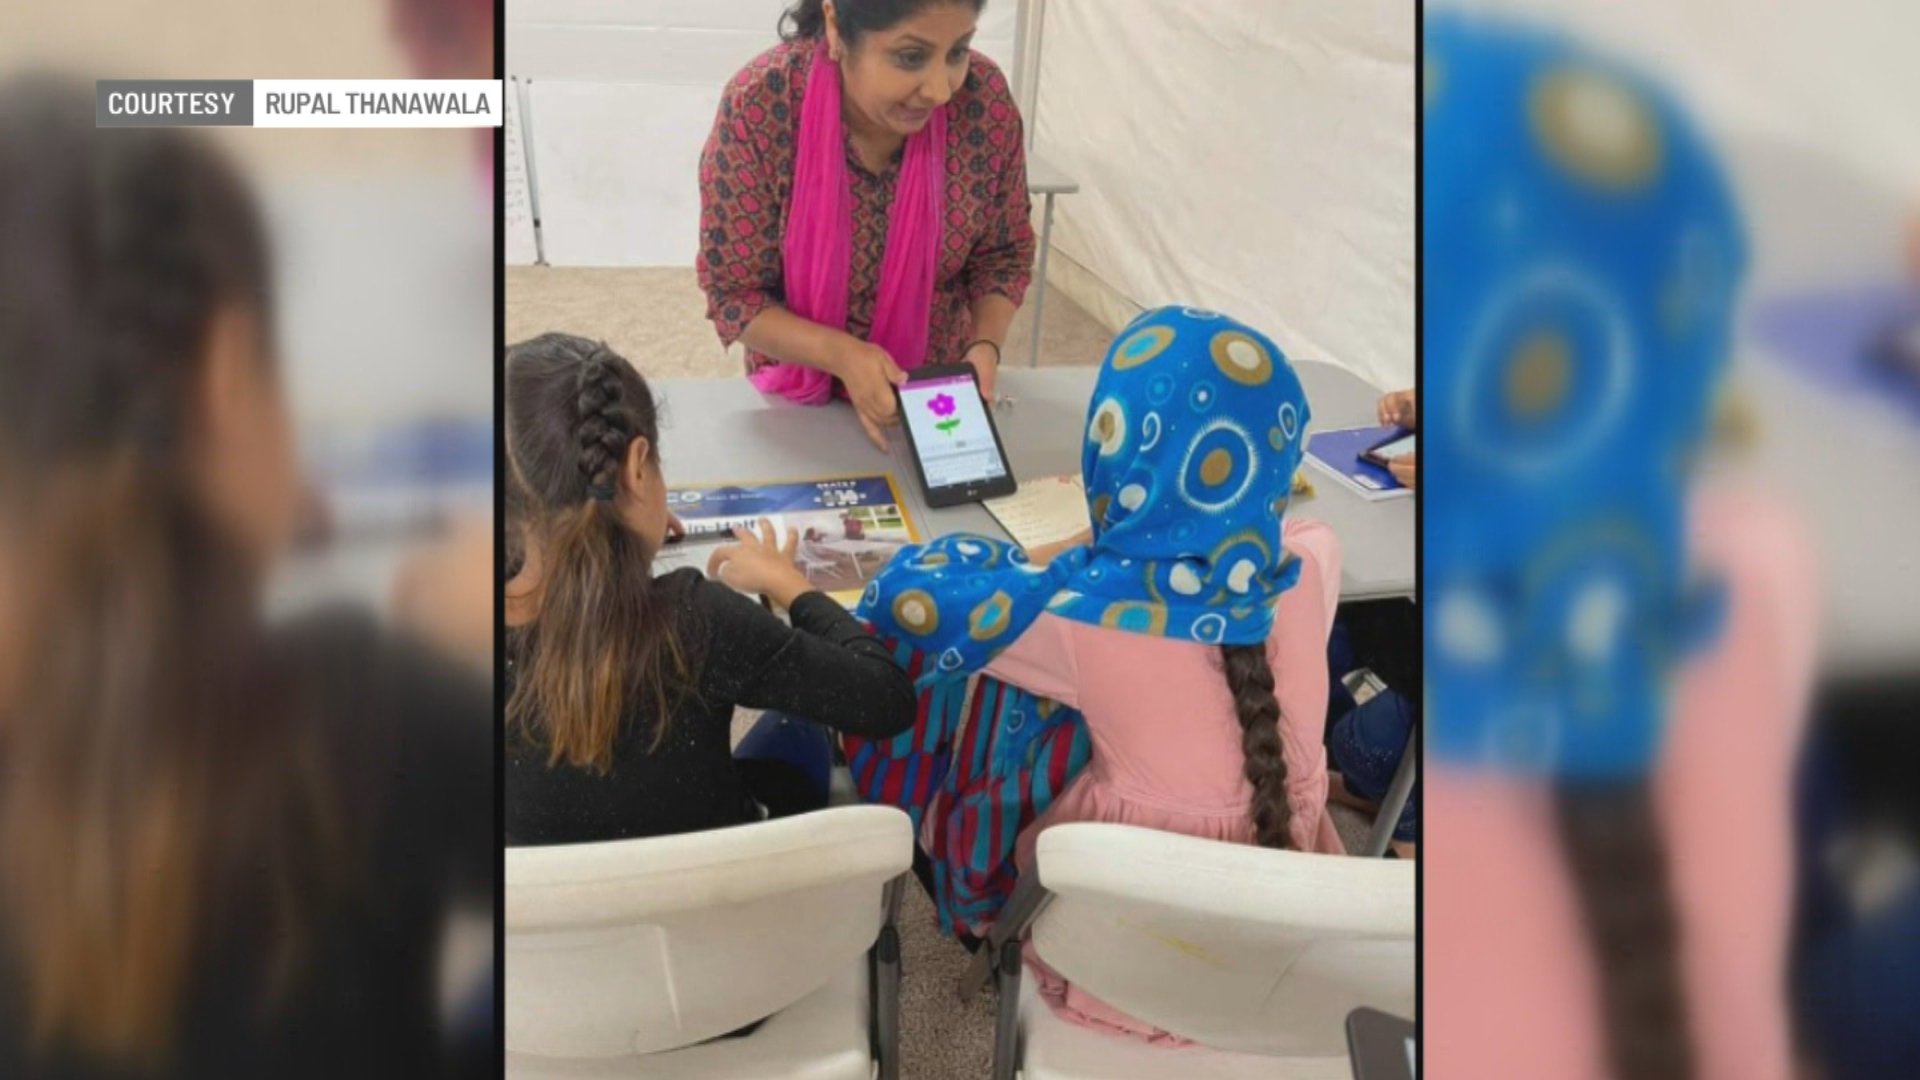 www.wishtv.com: Indy laptop donation initiative expands to Afghan refugee camps around US - WISH-TV